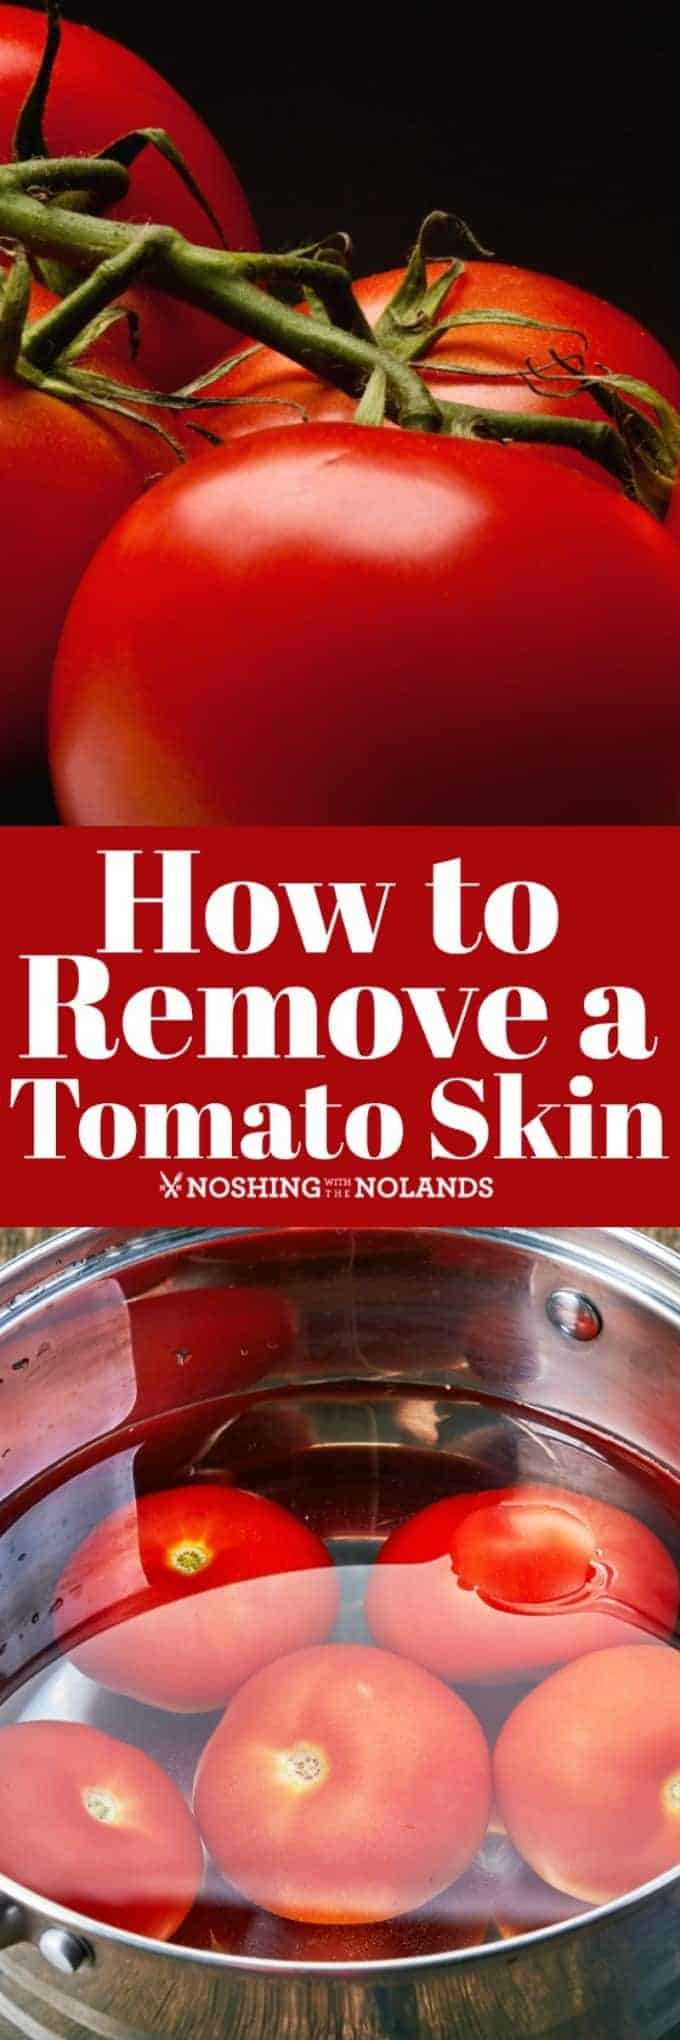 How to Remove a Tomato Skin is easy when you know how. Perfect for sauces and all your canning needs. #removingtomatoskins #howtowithtomatoes #tomatoes #canning